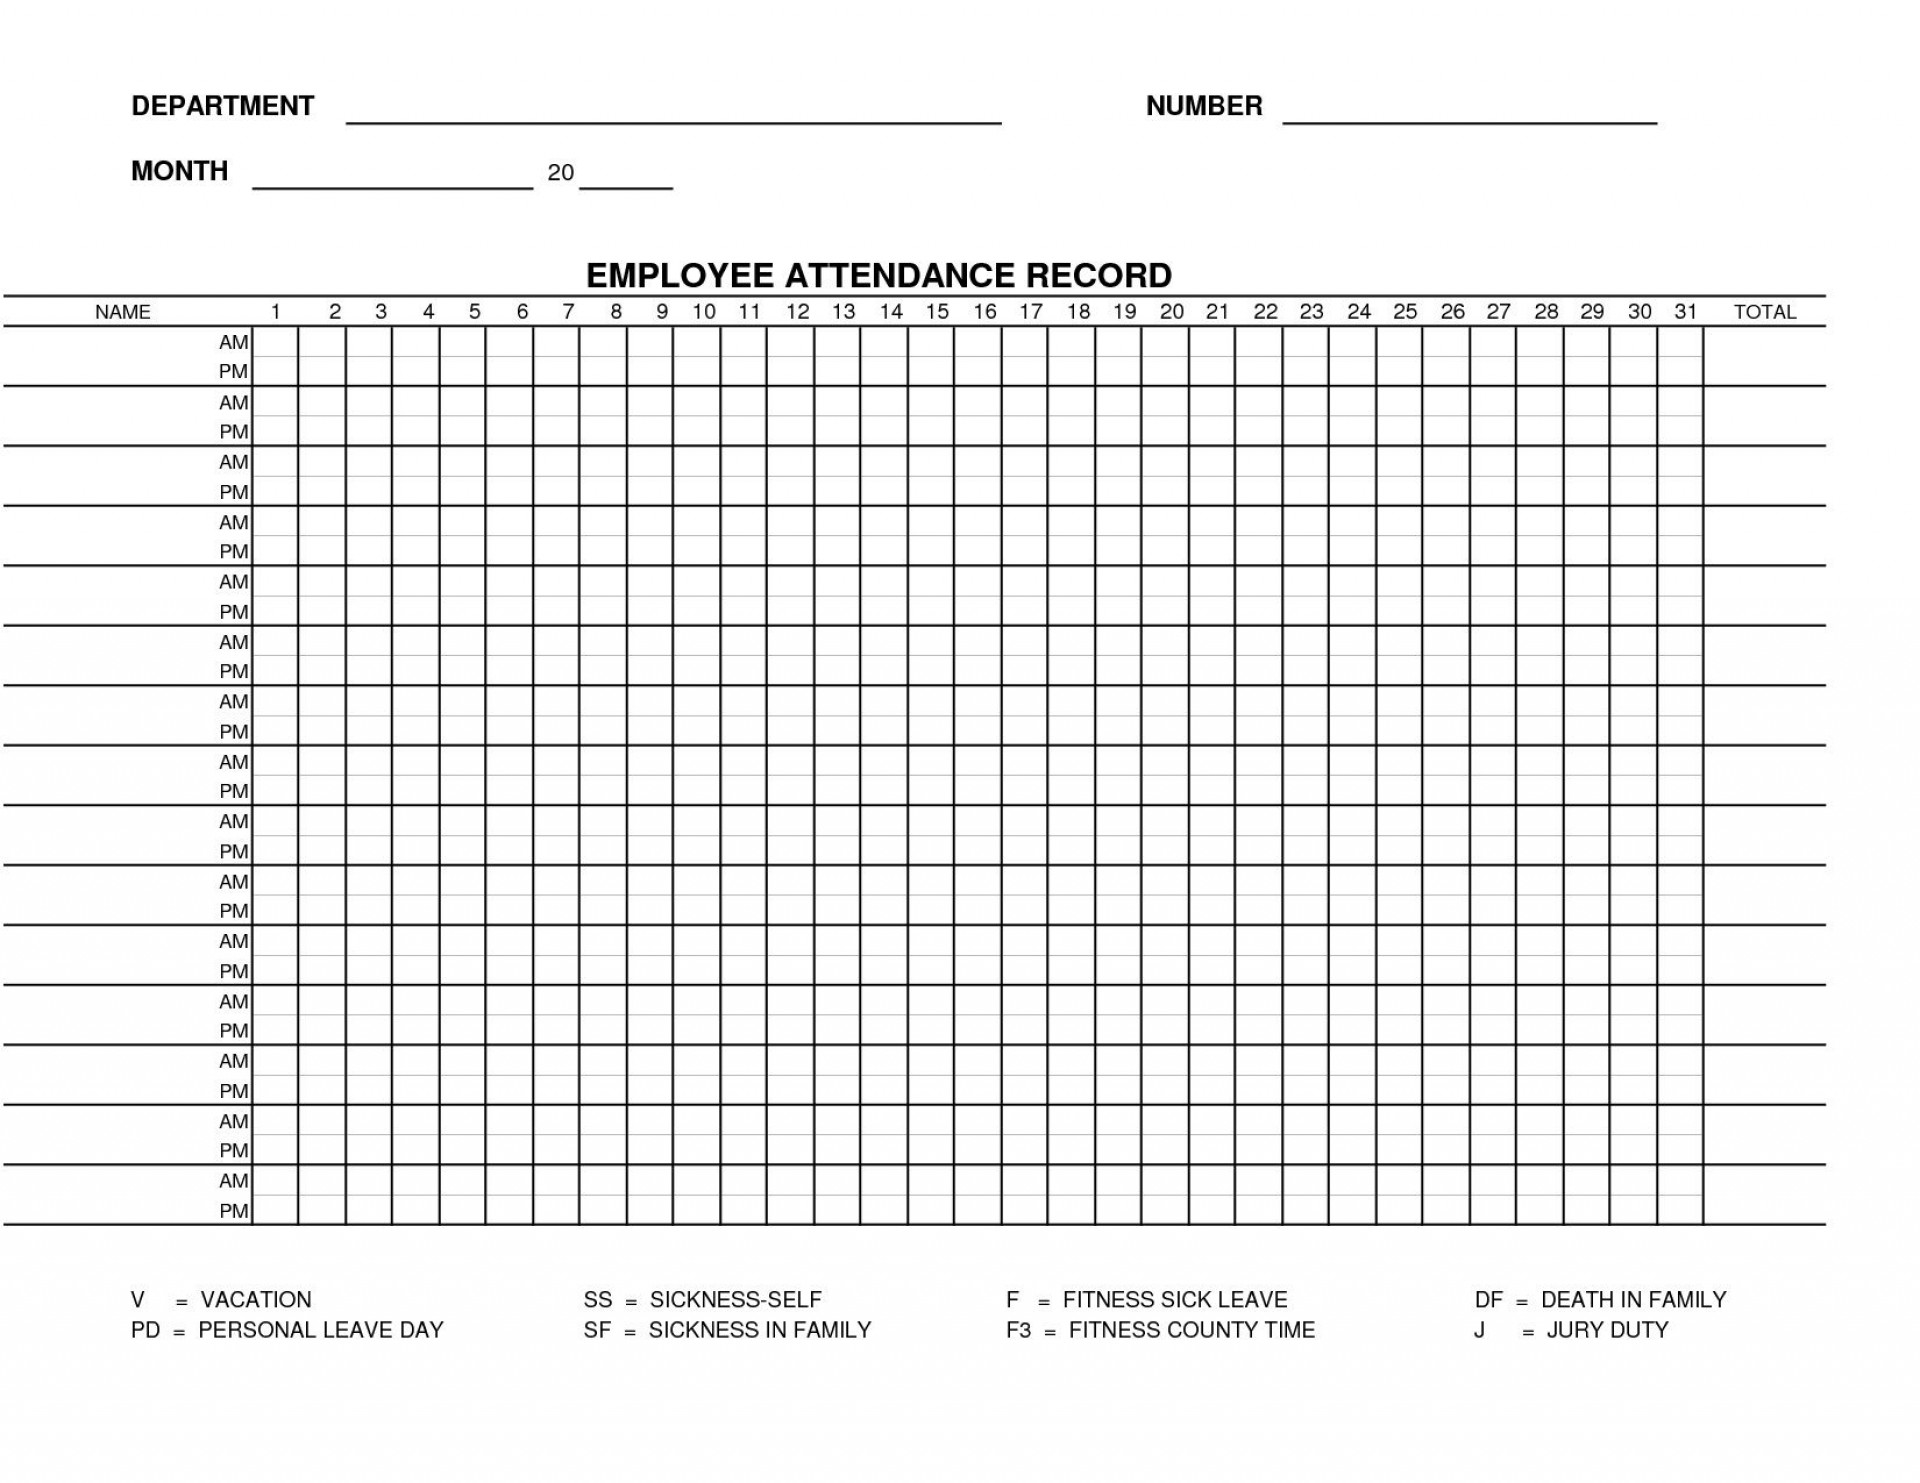 002 Incredible Employee Attendance Record Template Excel Inspiration  Free Download With Time1920